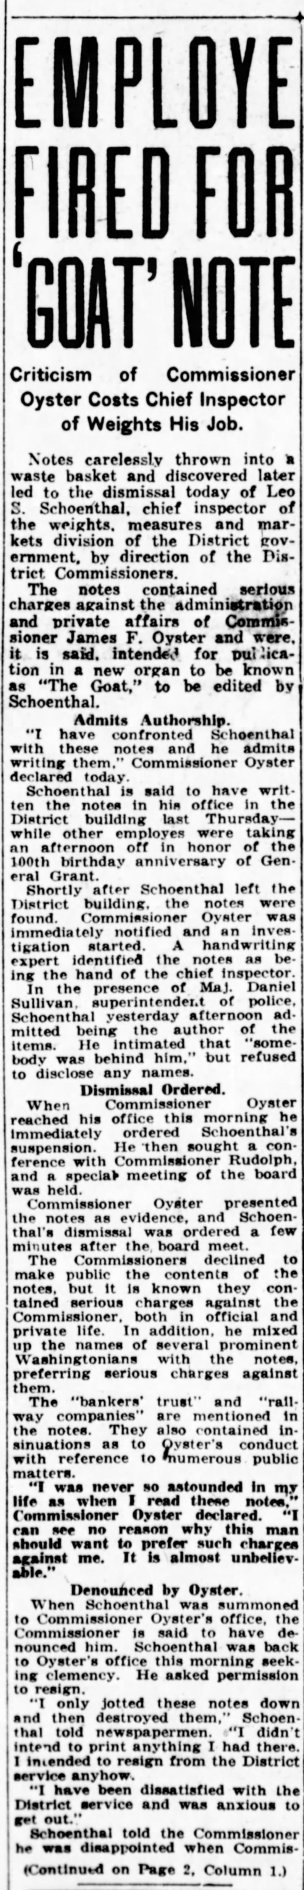 Leo Schoenthal fired Washington Times 1922